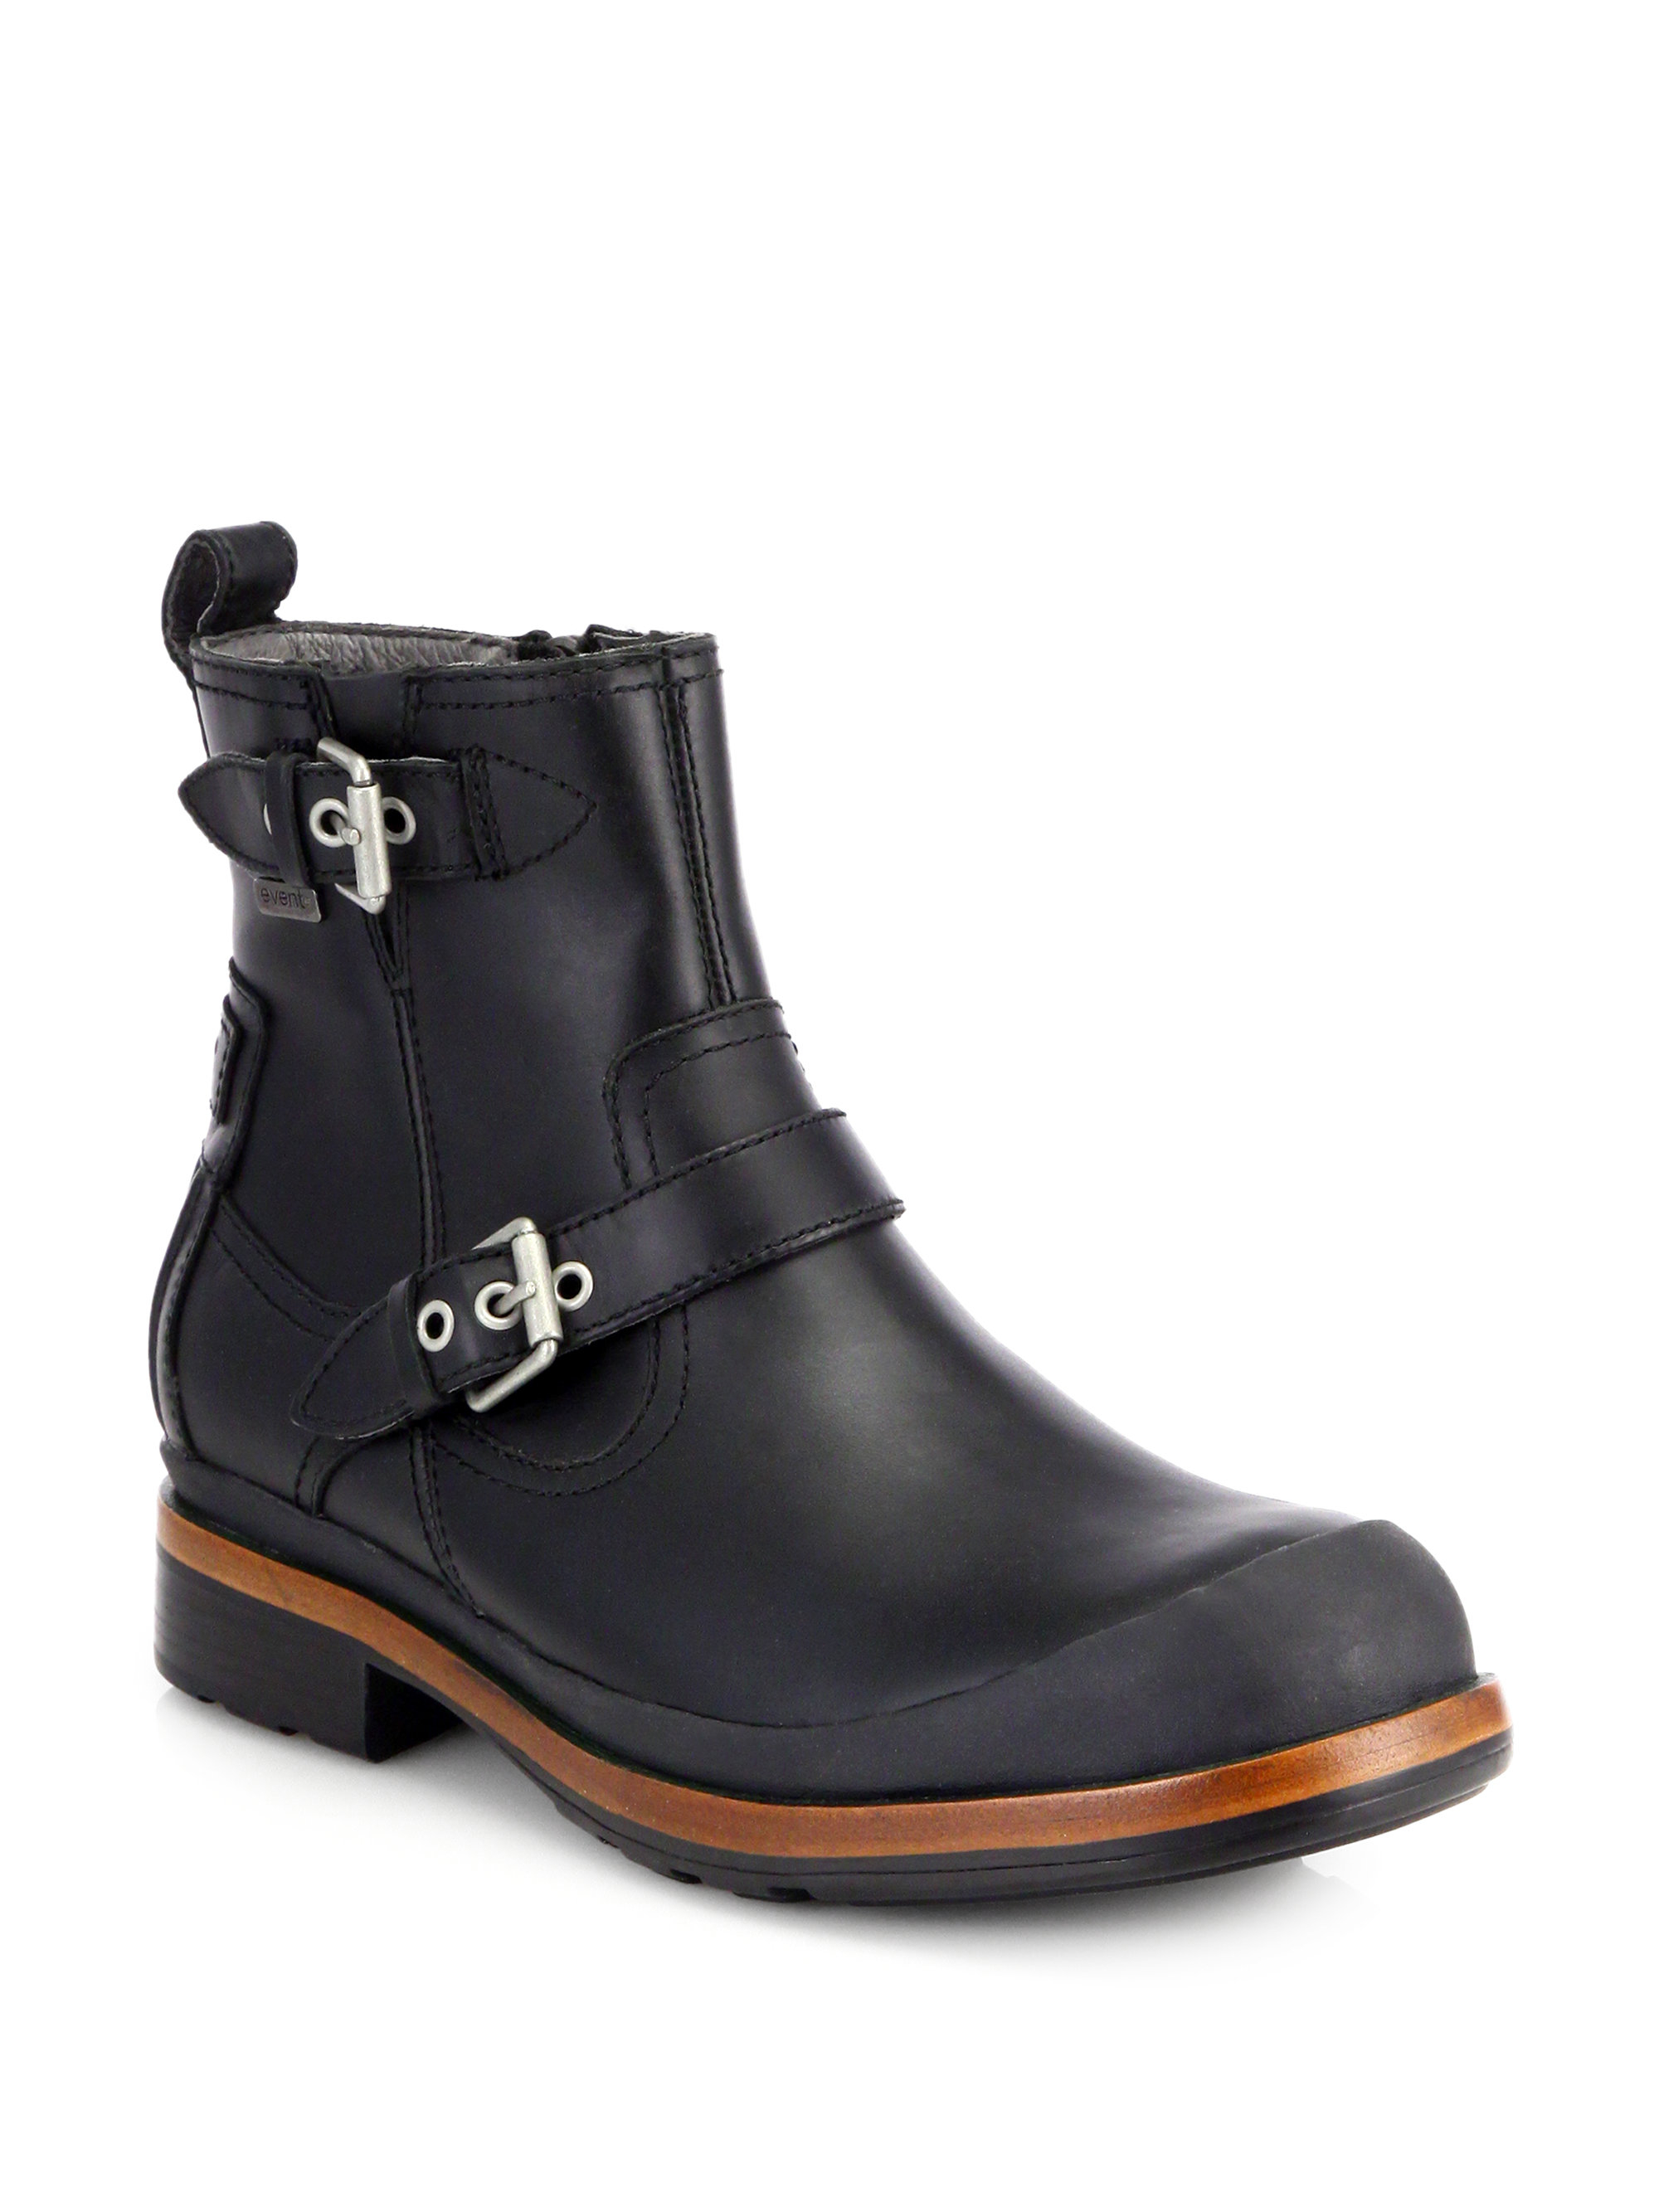 Ugg Alston Leather Buckle Boots In Black For Men Lyst